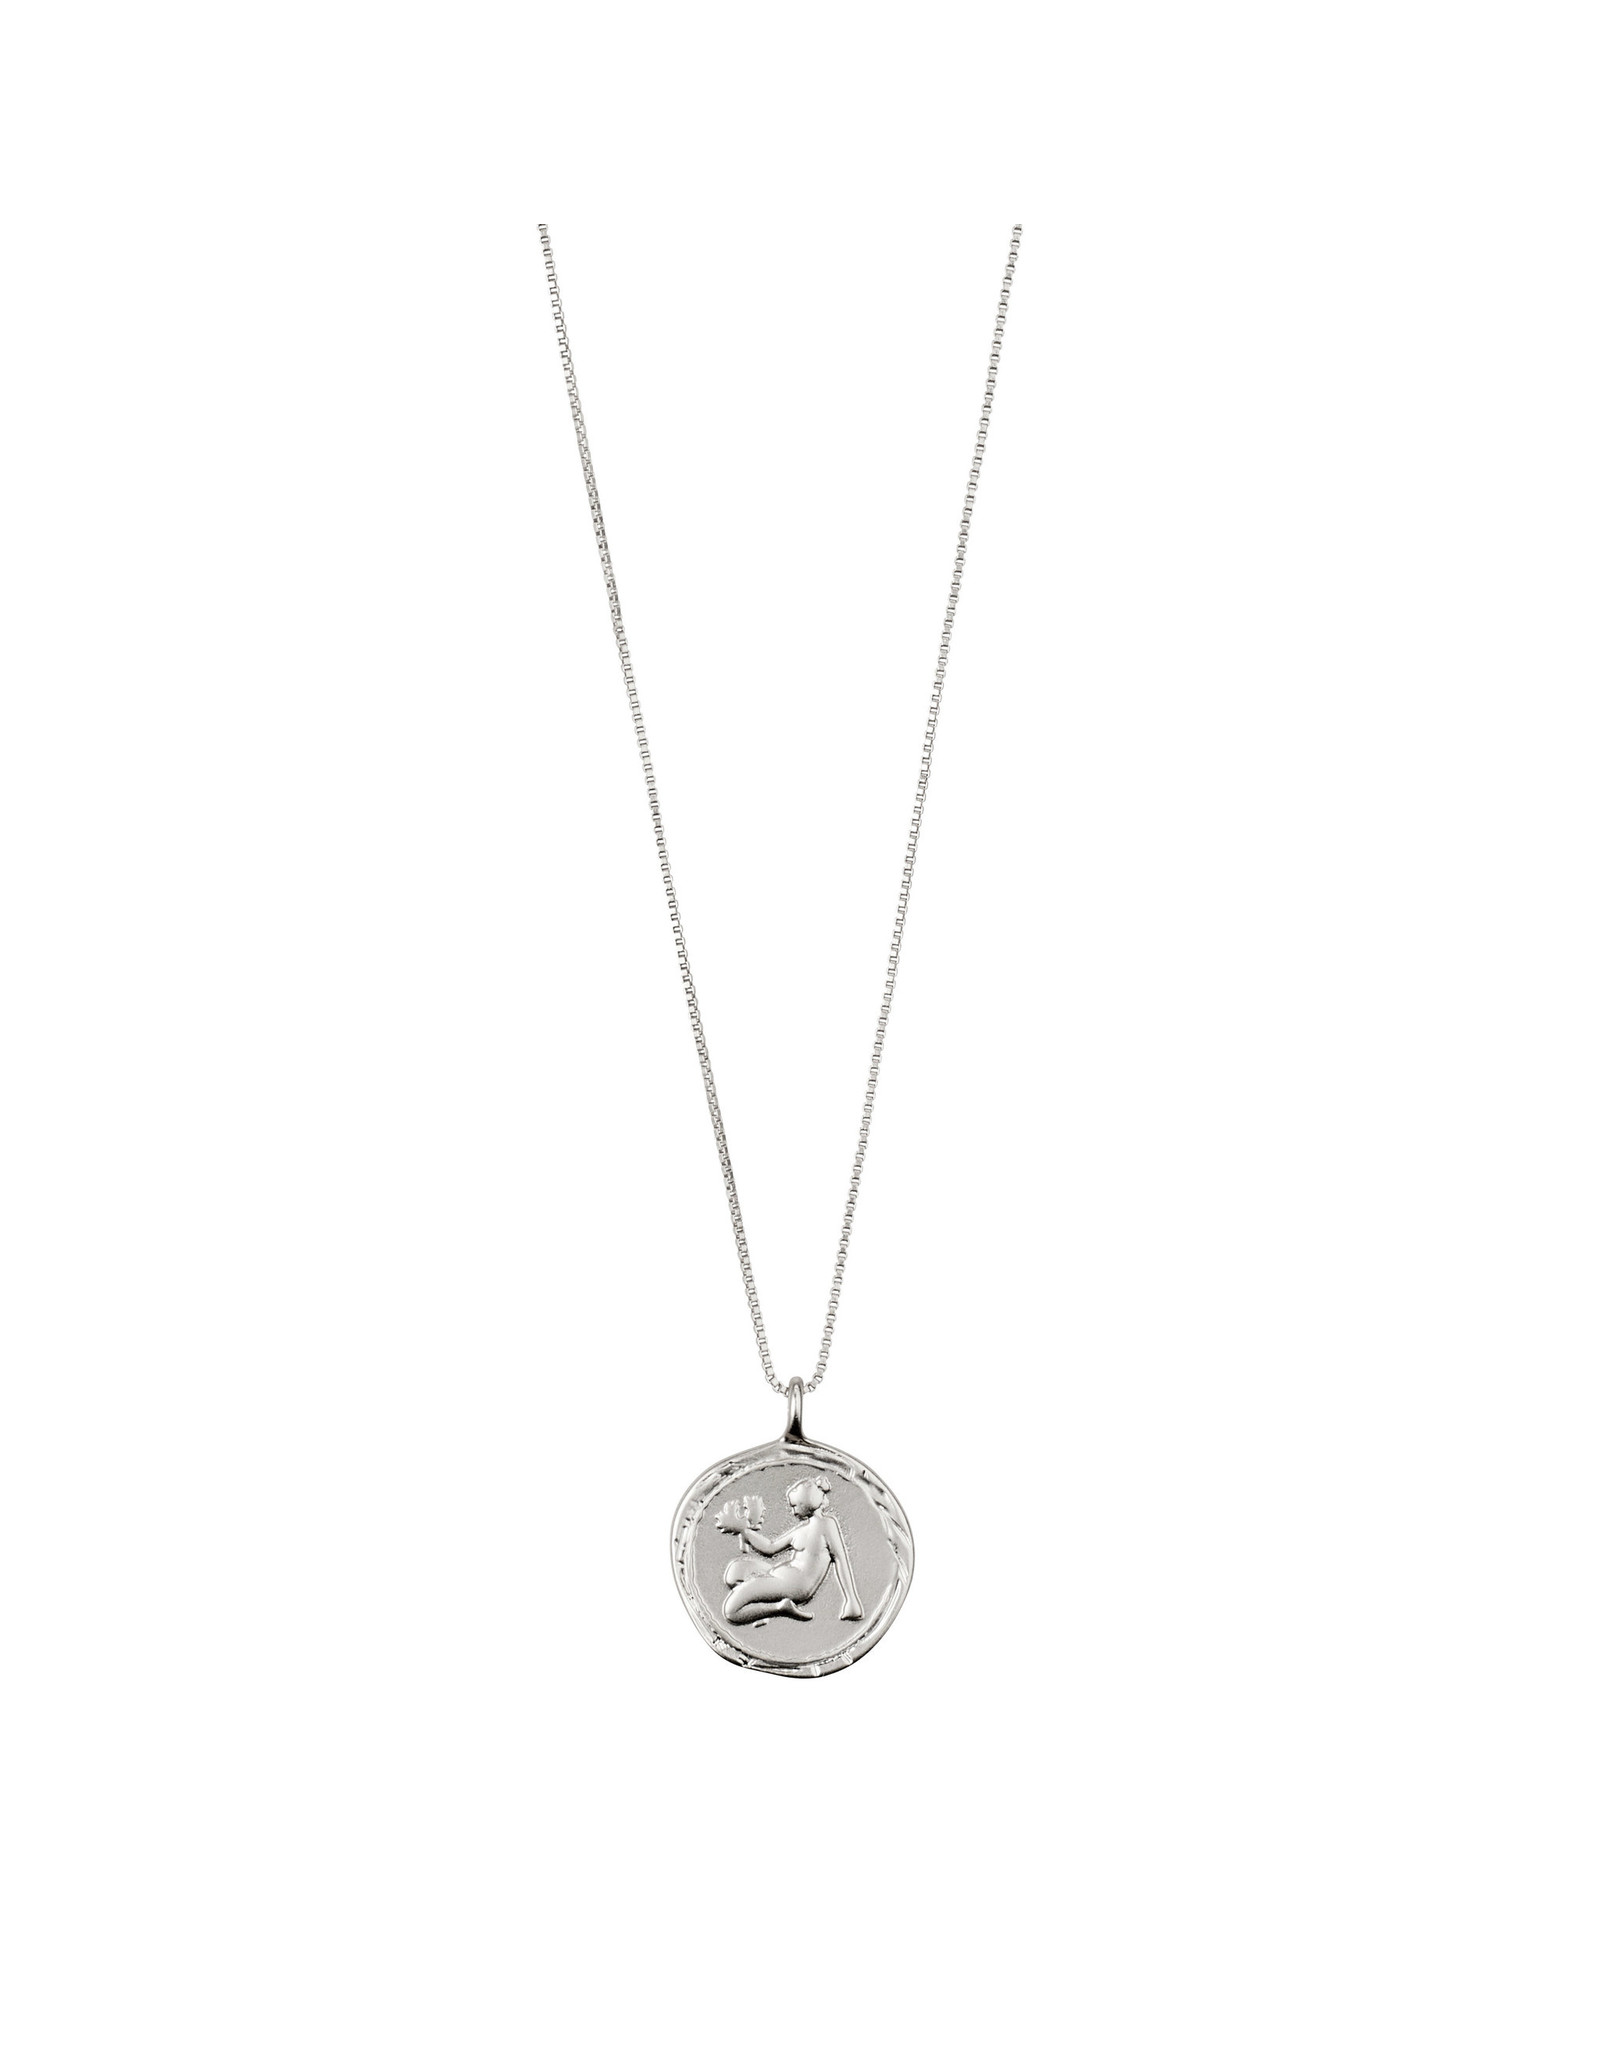 Pilgrim Astrological Necklace - Silver